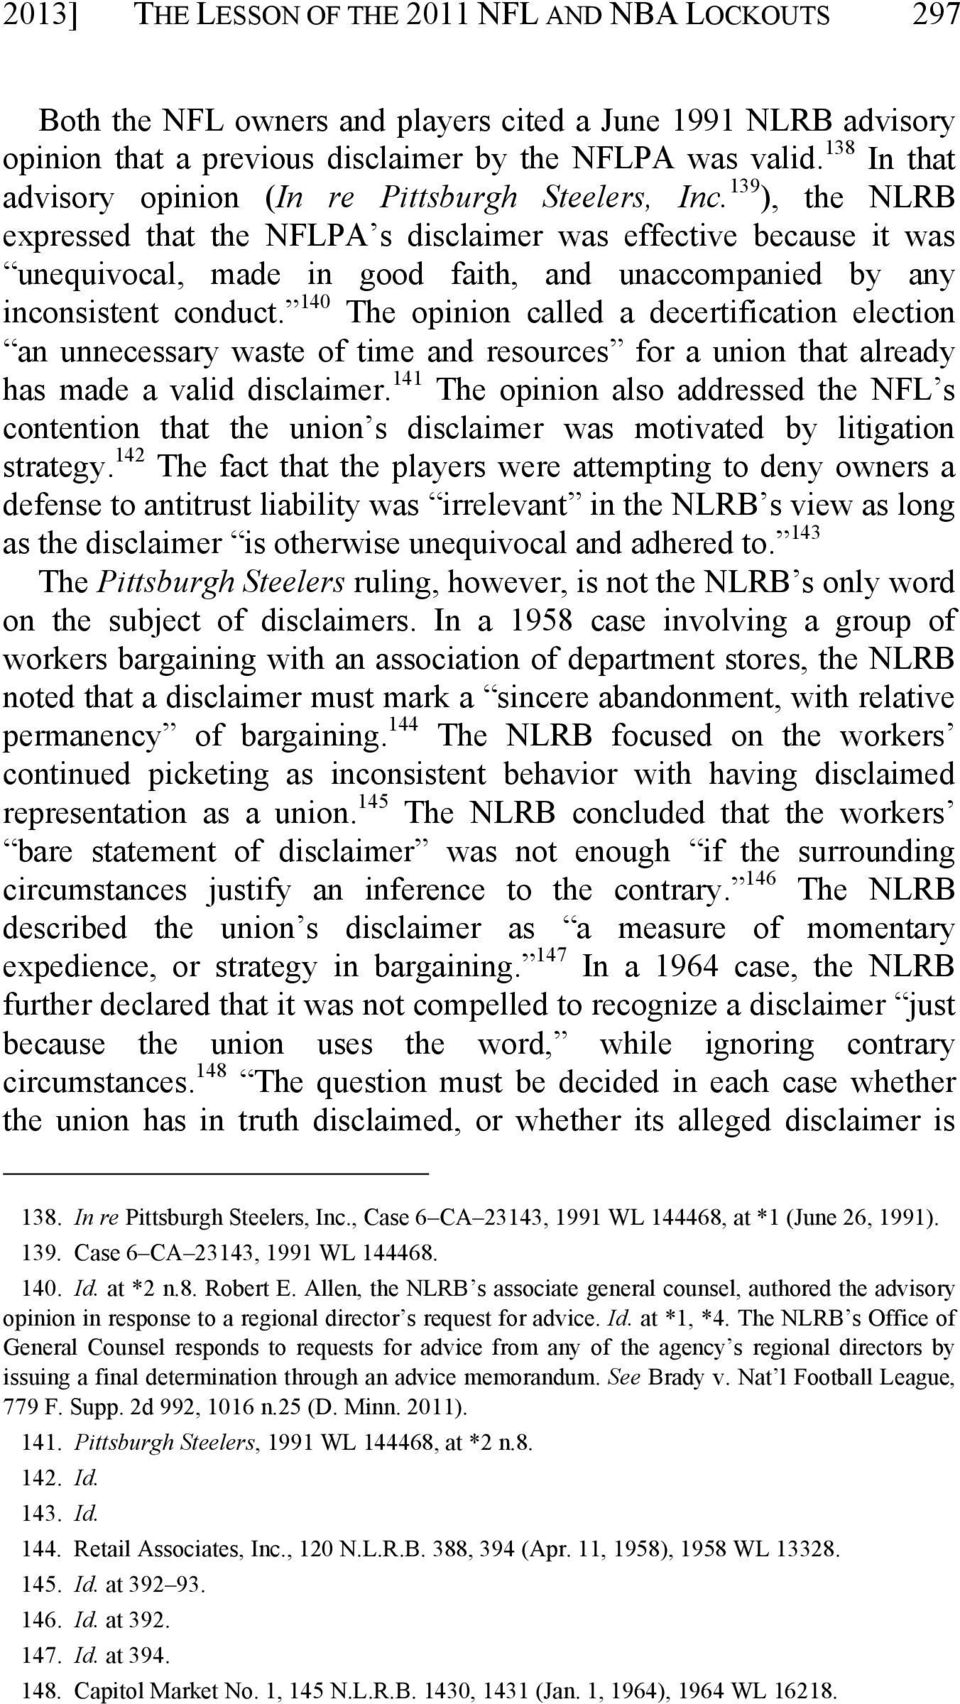 139 ), the NLRB expressed that the NFLPA s disclaimer was effective because it was unequivocal, made in good faith, and unaccompanied by any inconsistent conduct.